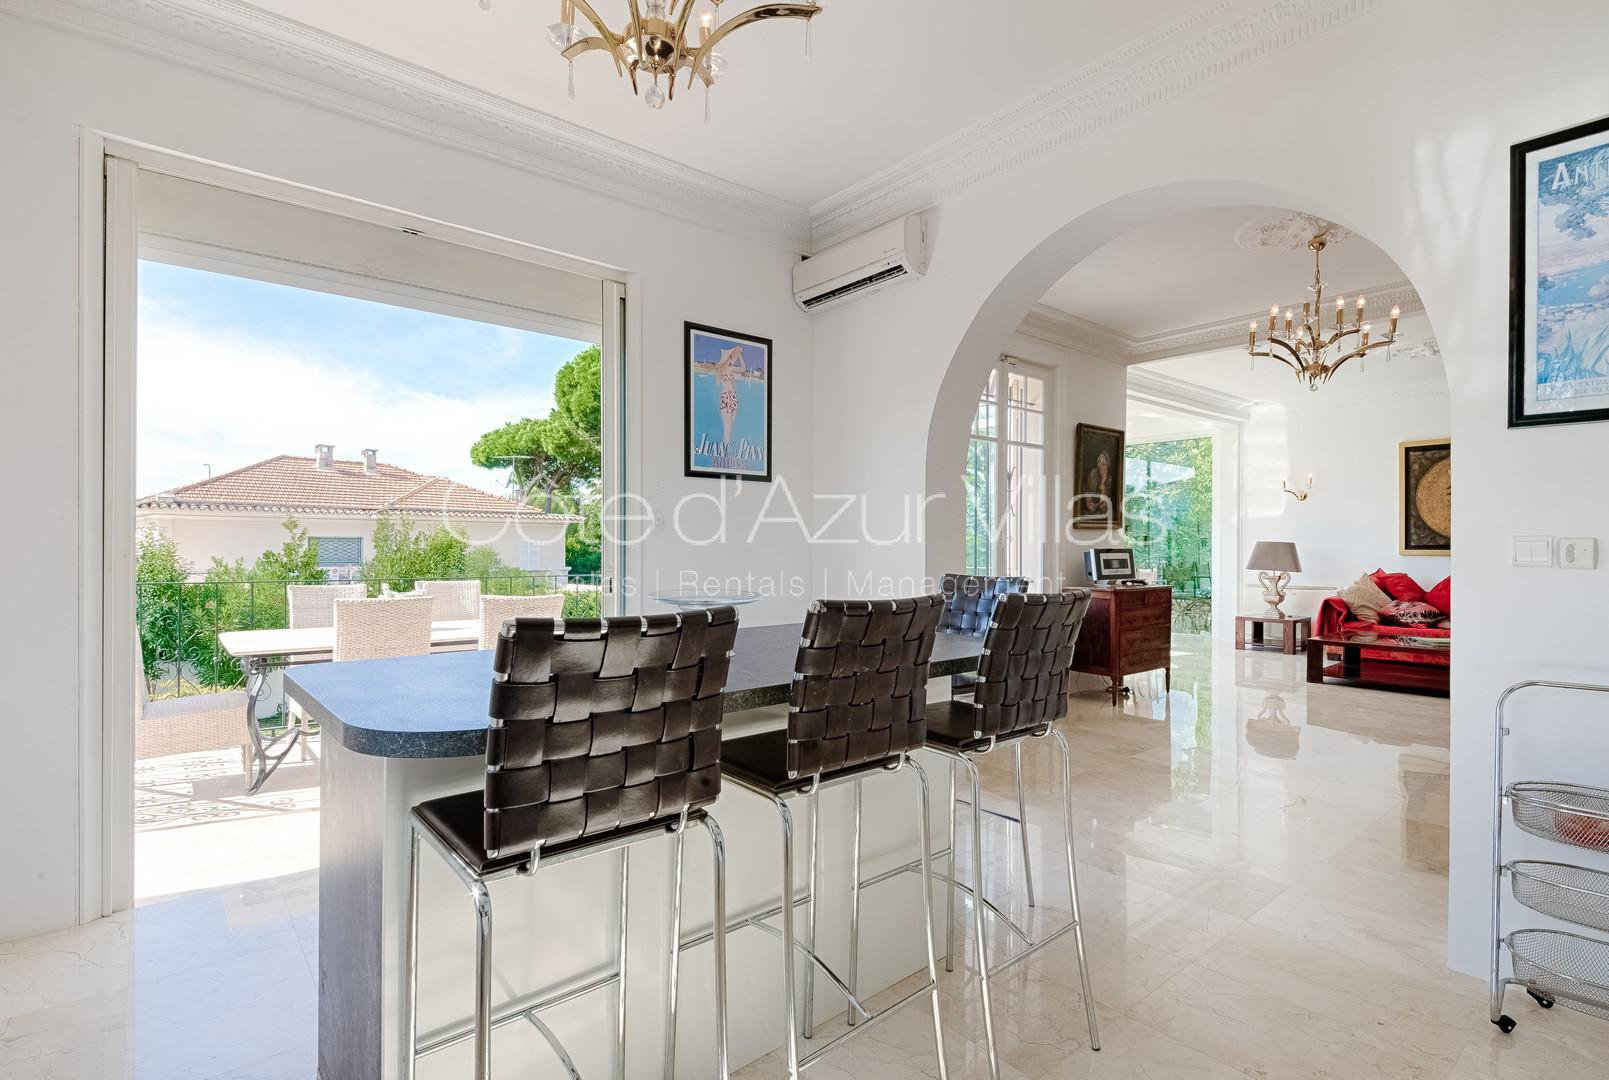 Cap d'Antibes - Stylish Villa, Walking Distance to the town and beach